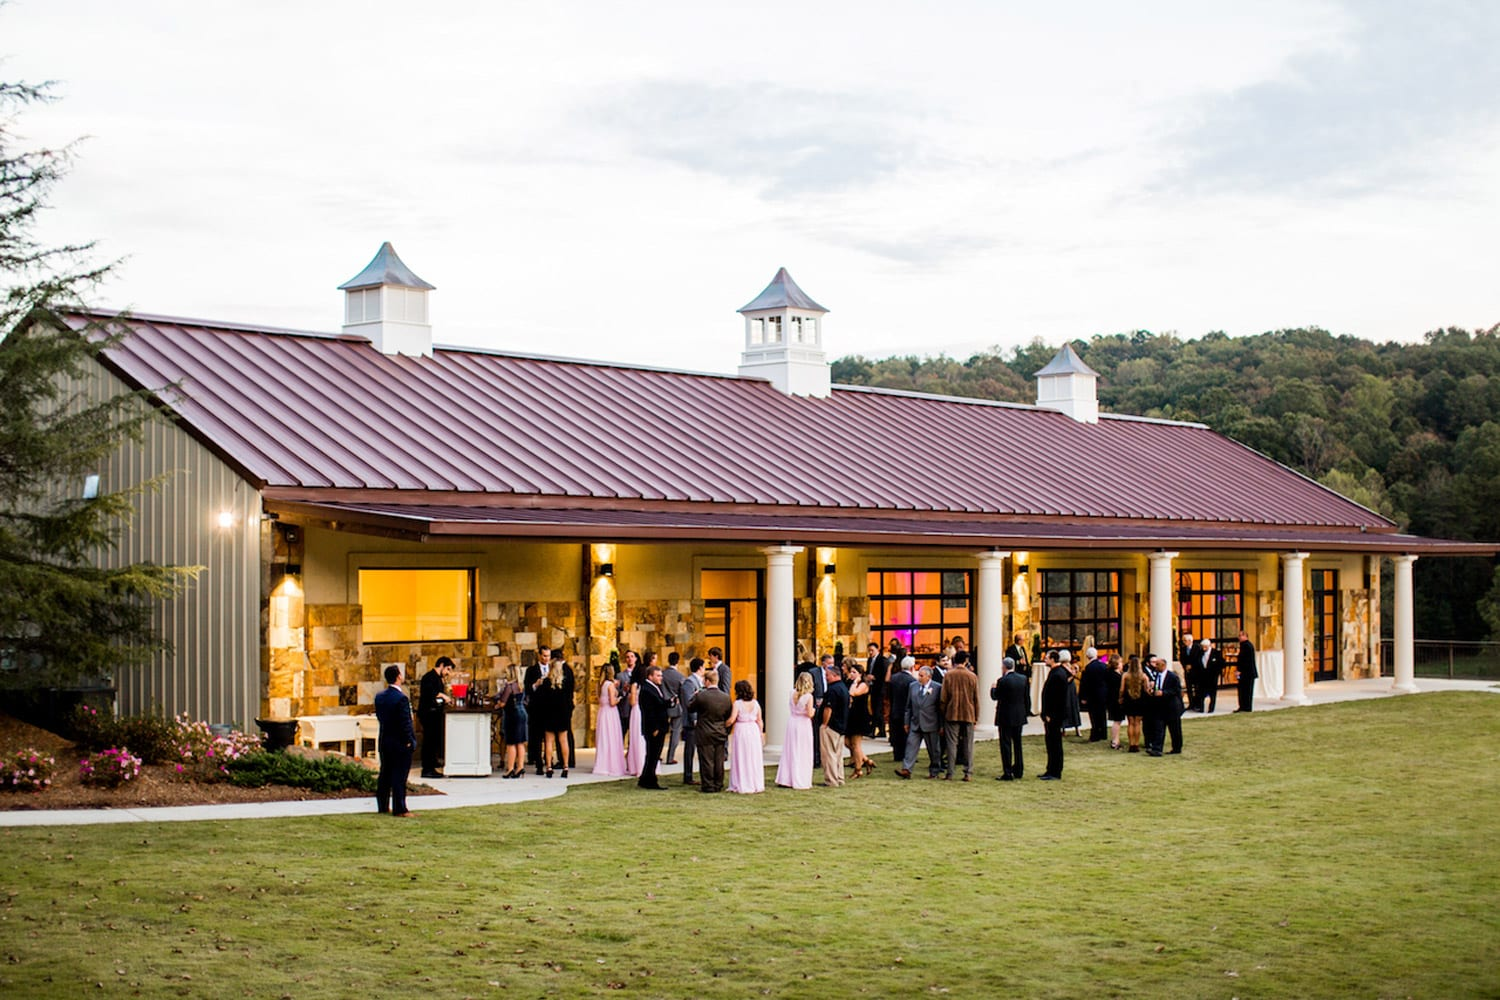 Wedding guests gather outside on the grass